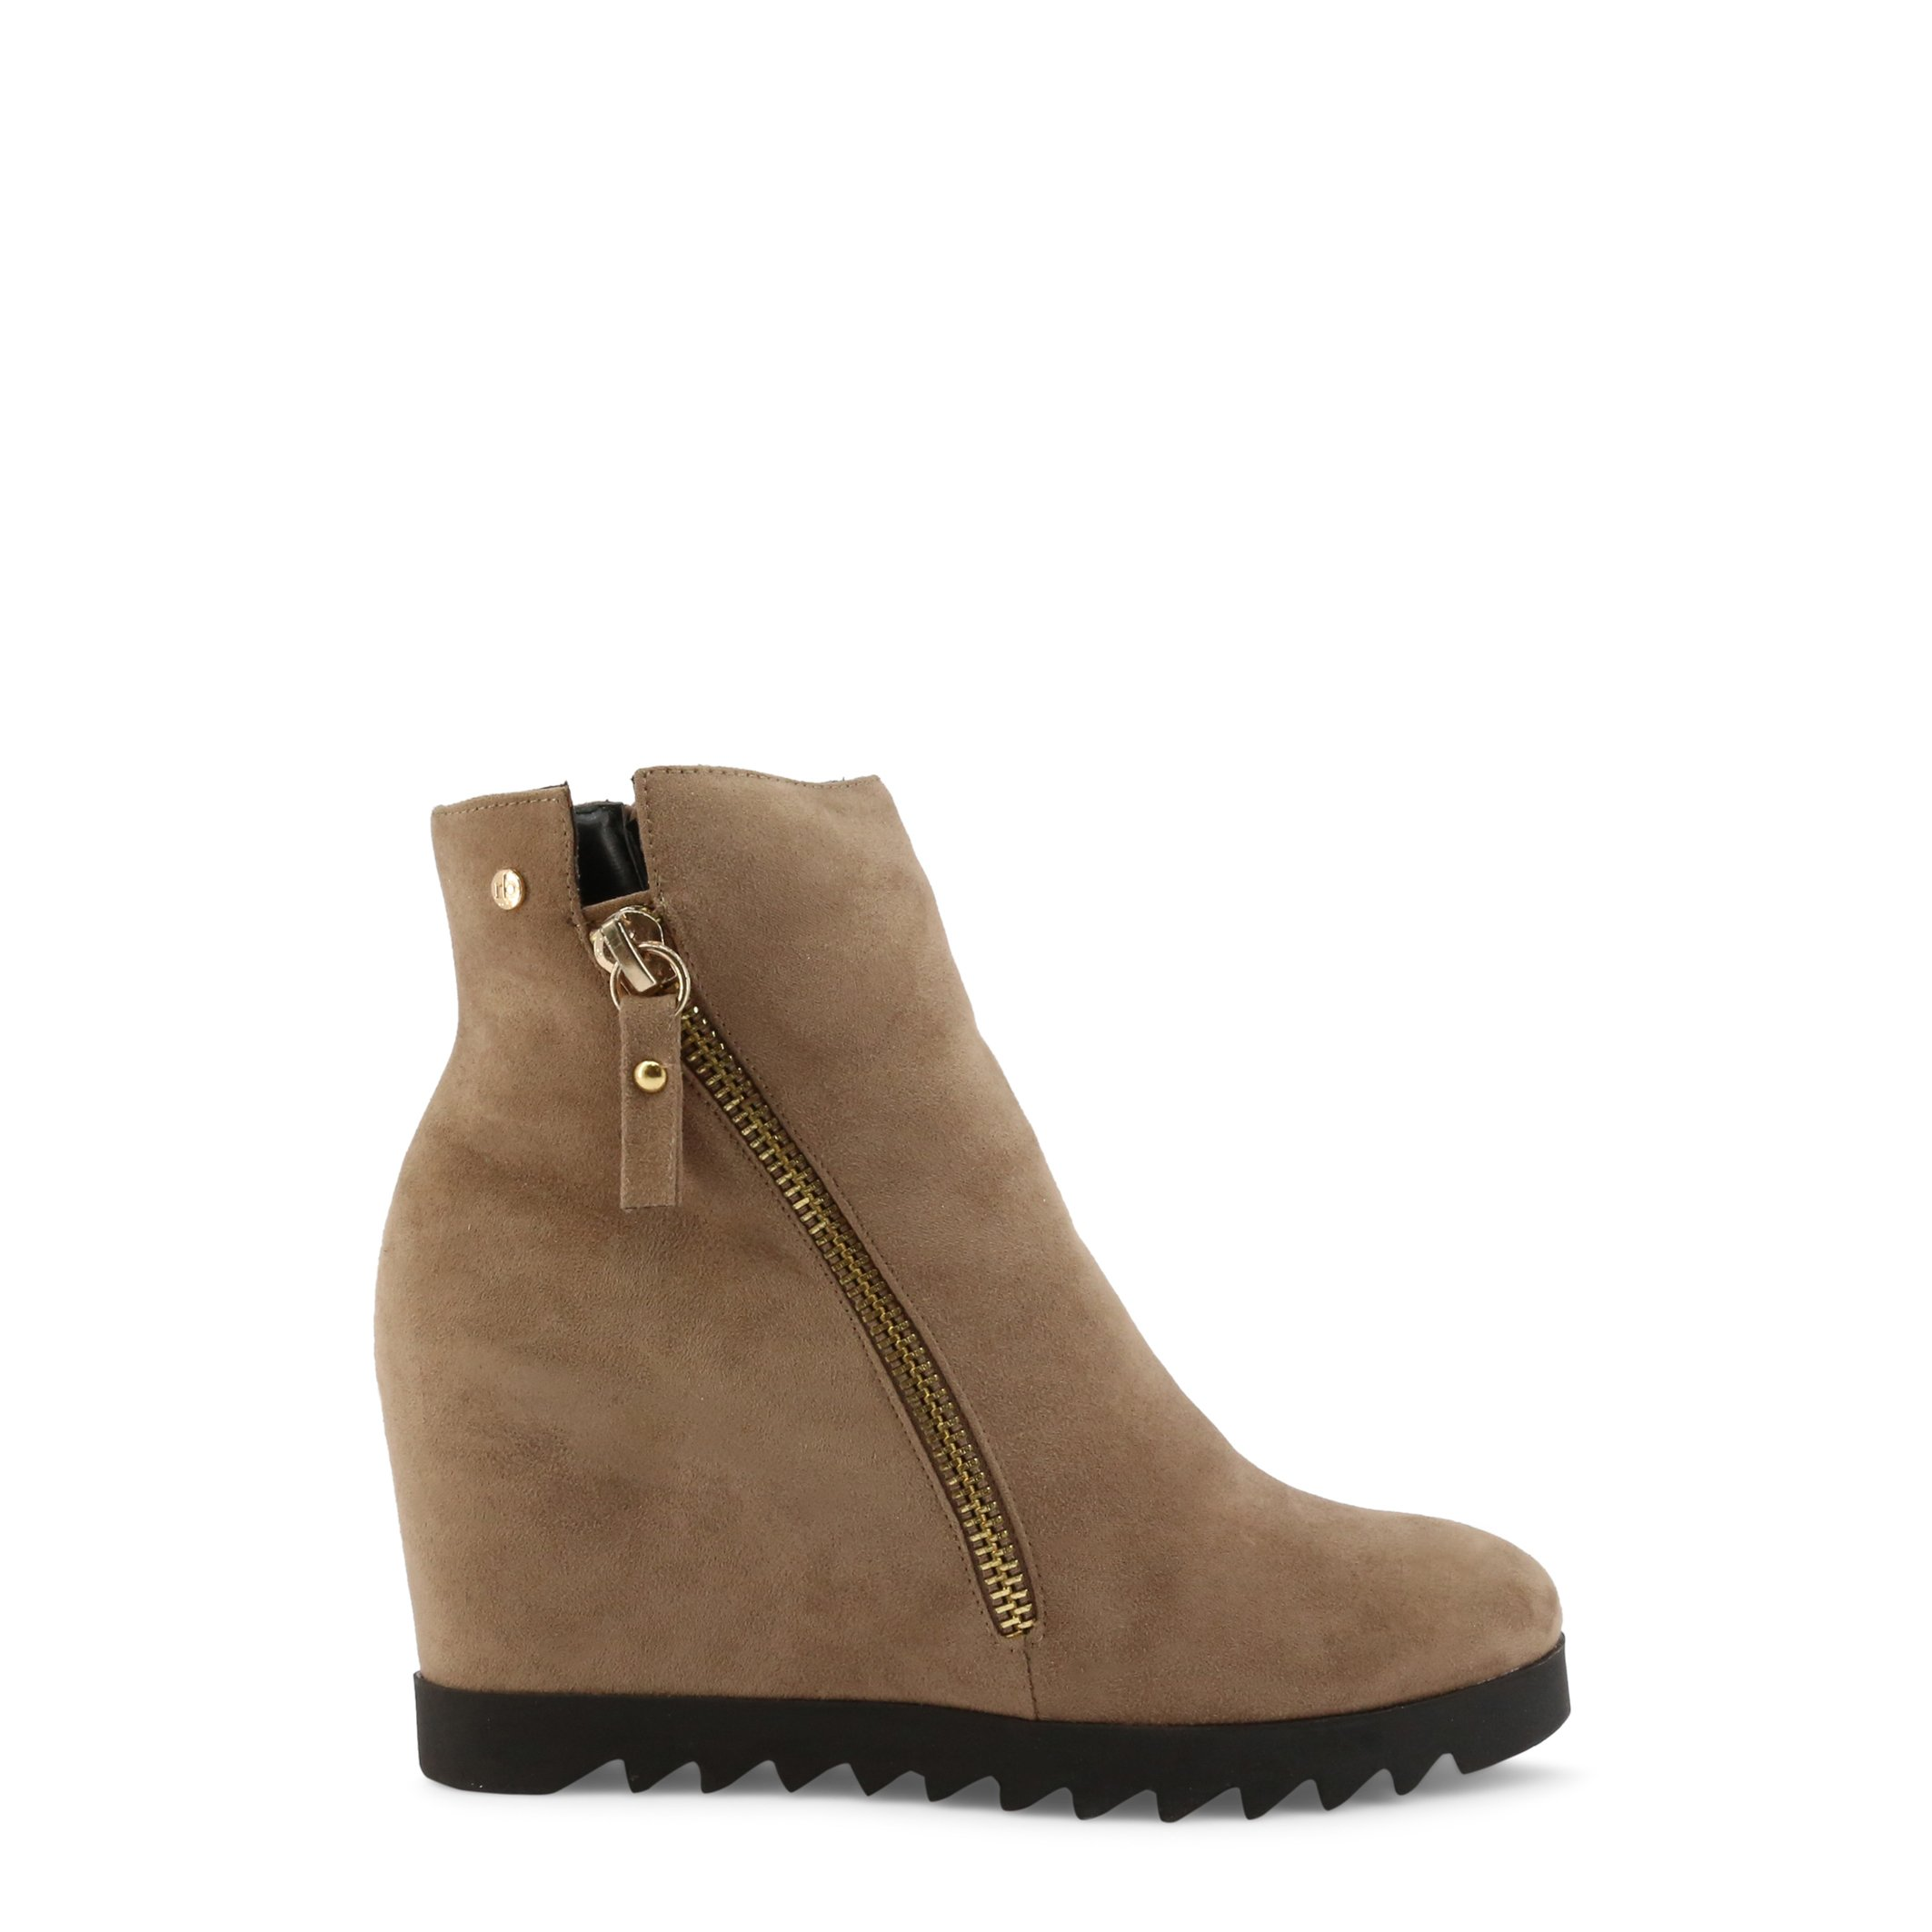 Roccobarocco Women's Ankle Boot Various Colours RBSC0CP02CAM - brown-1 EU 36